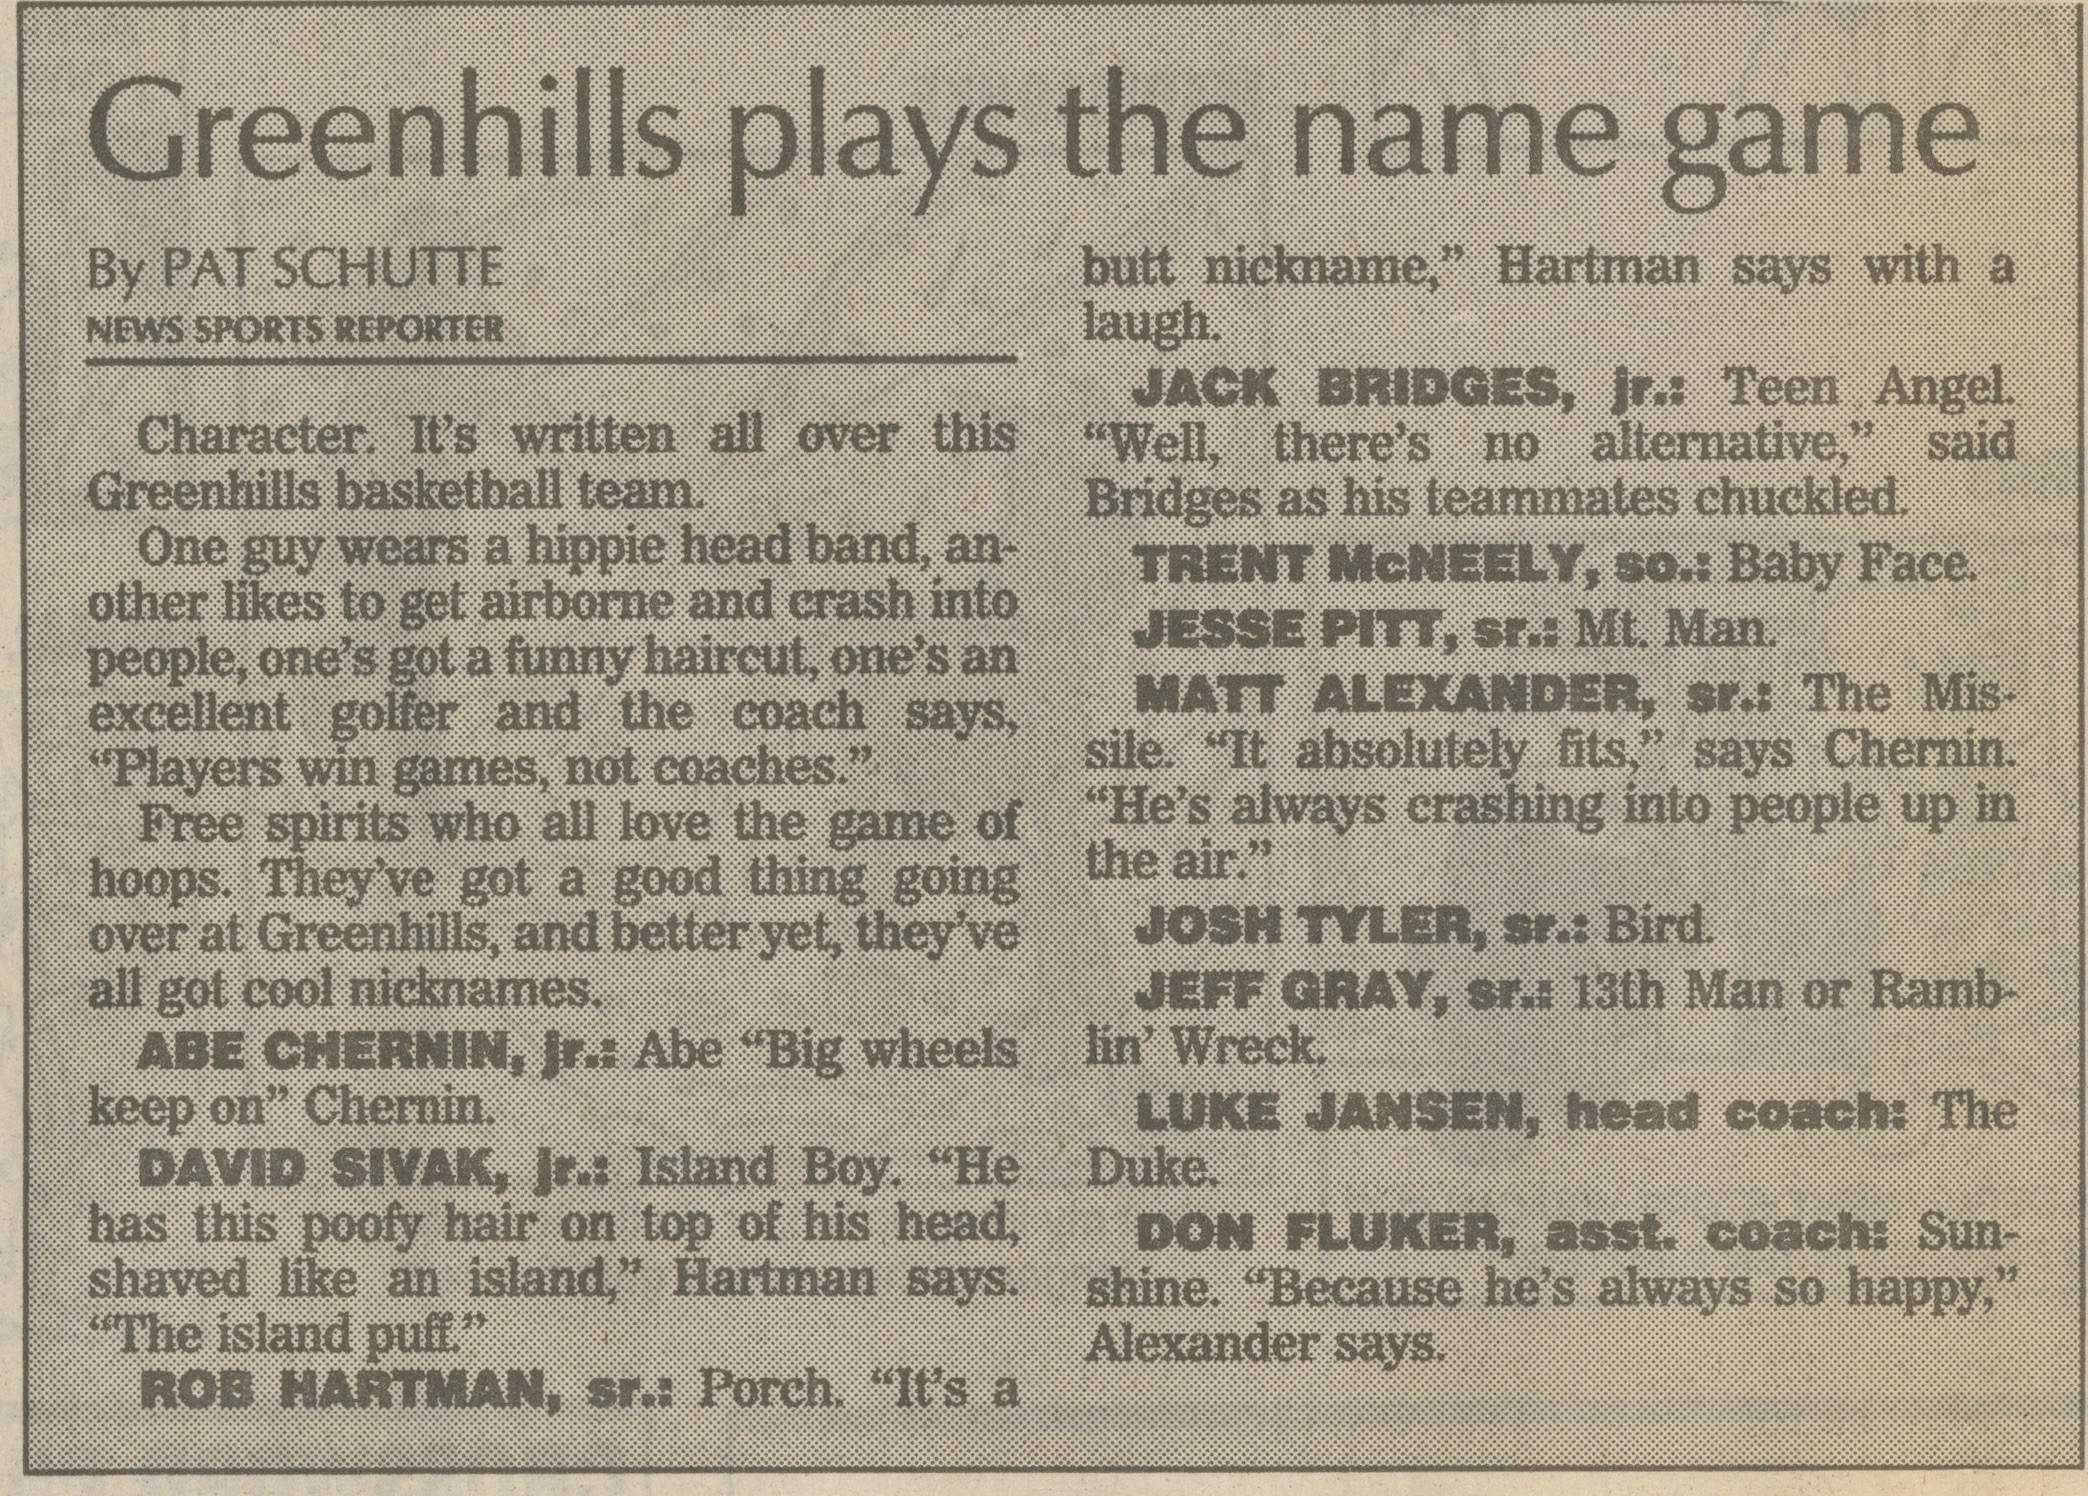 Greenhills Plays The Name Game image